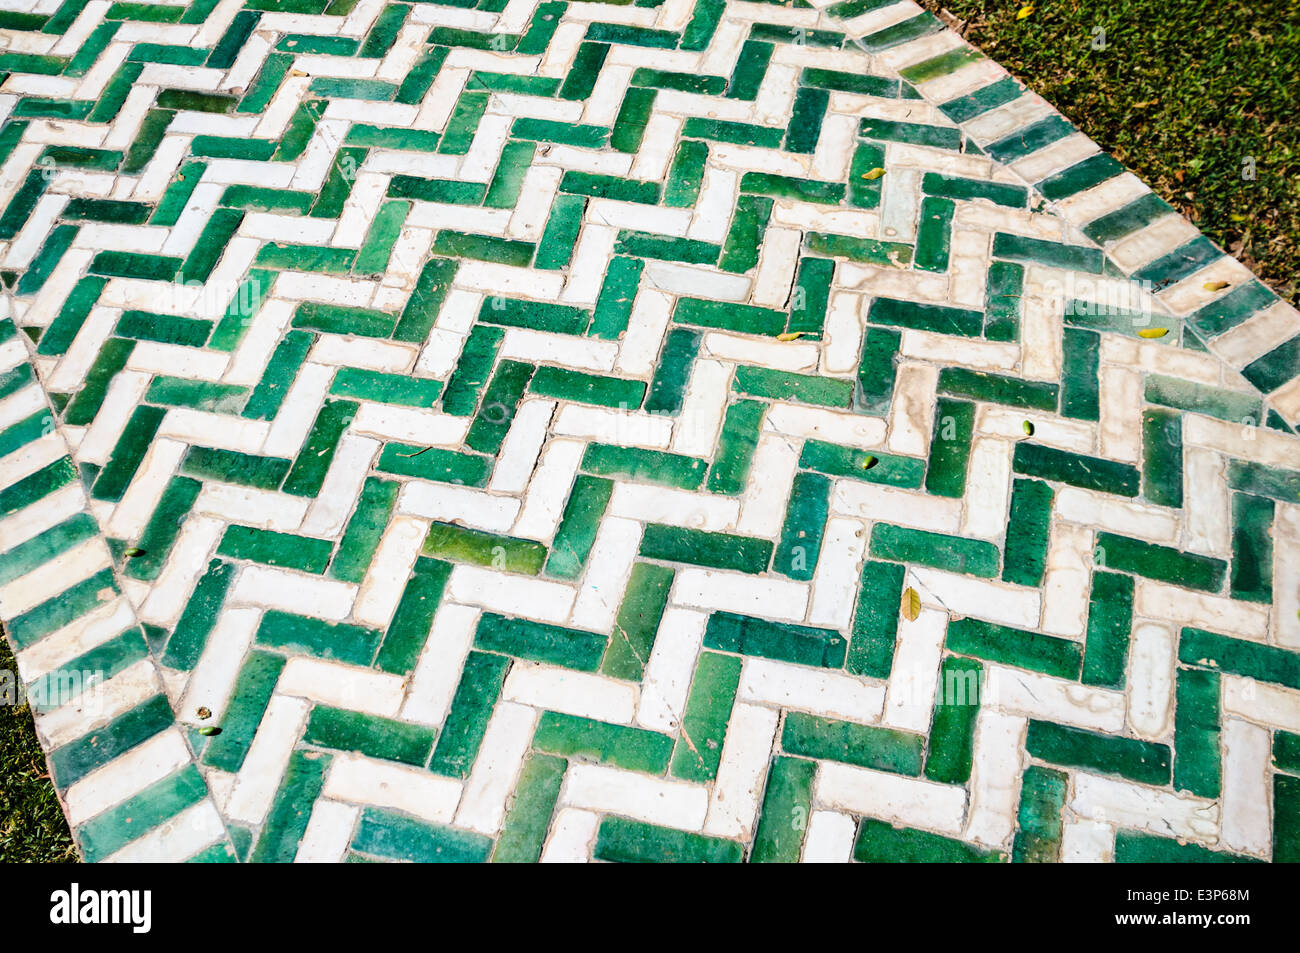 https www alamy com stock photo garden path made from green and white rectangular ceramic tiles laid 71173332 html